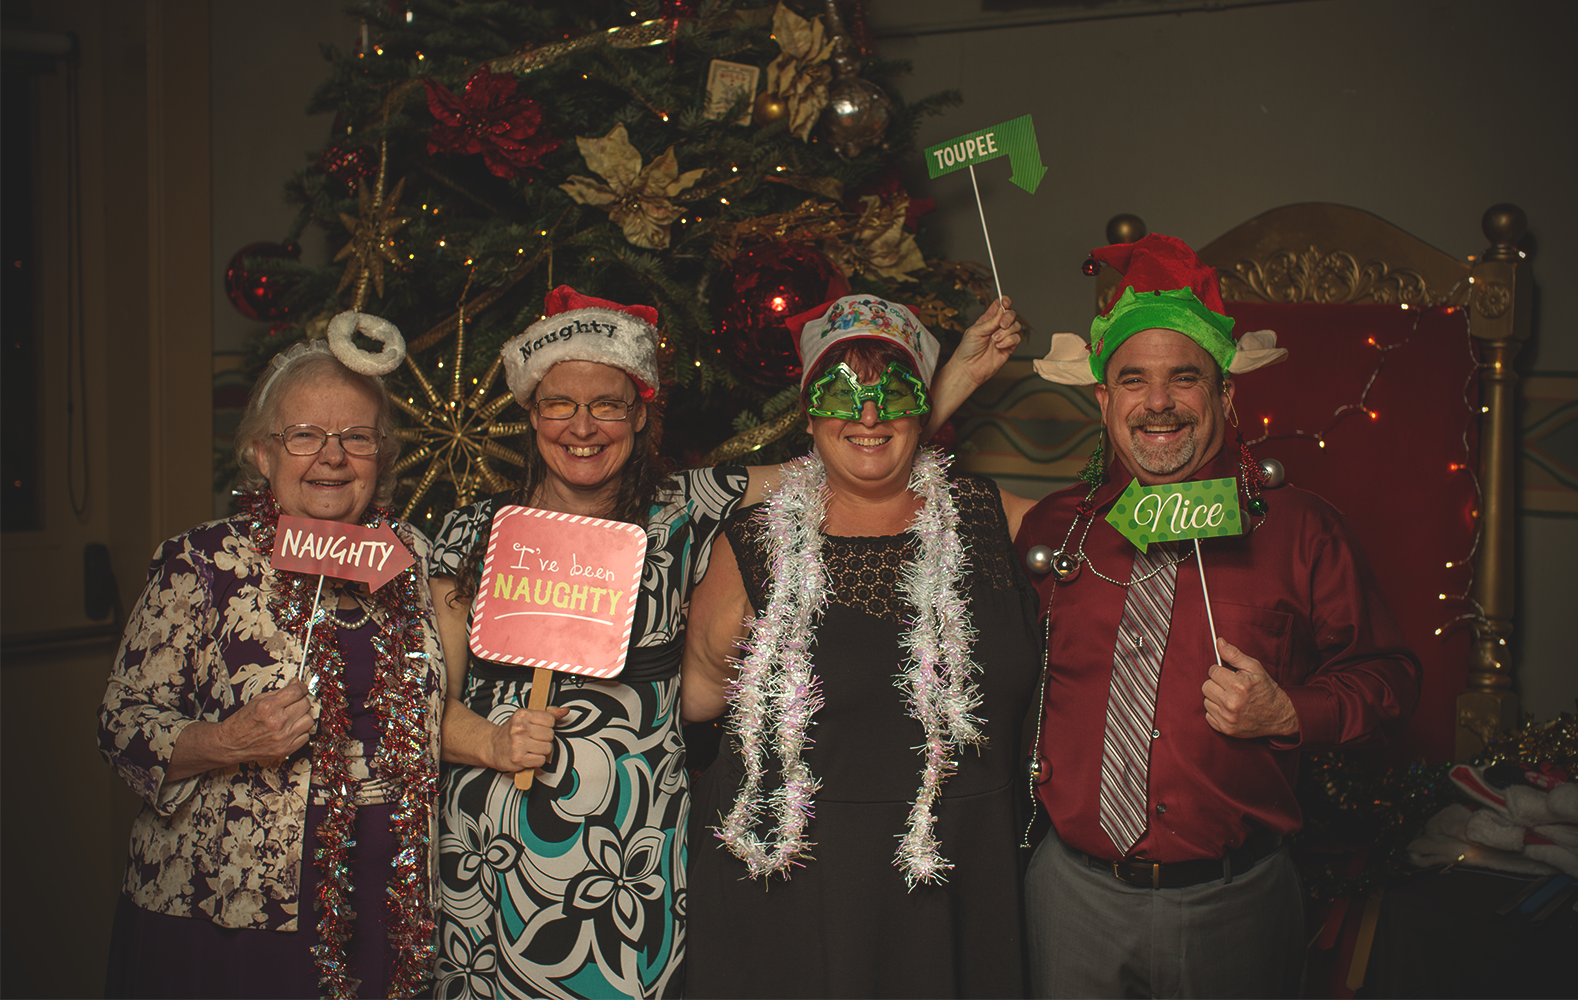 epproperties-vancouver-washington-xmas-party-photolga19.png